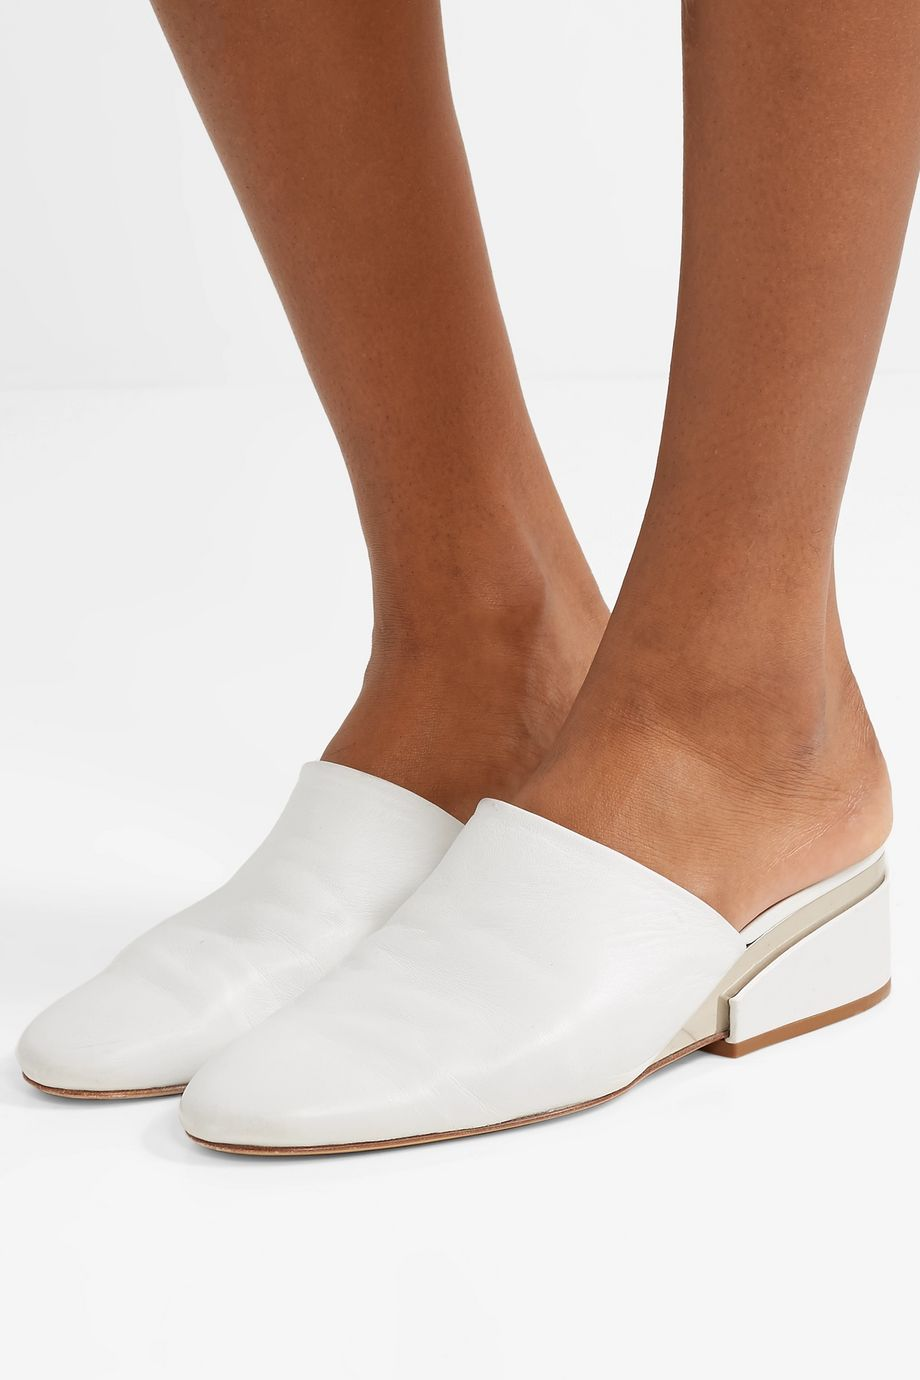 Gabriela Hearst Adele leather mules